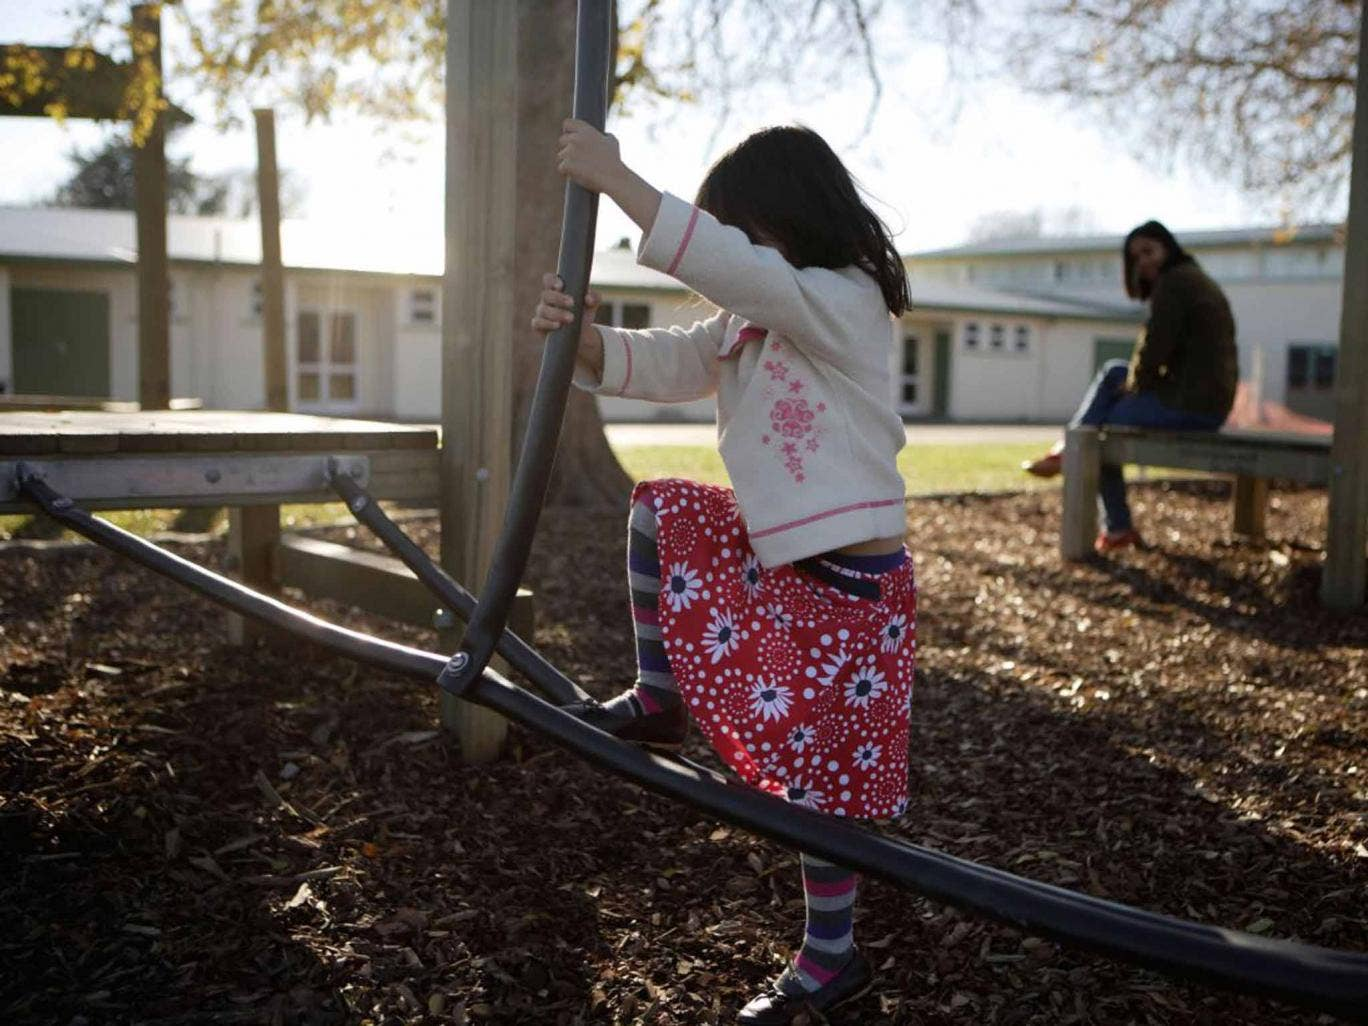 Child's play: letting young people roam outdoors directly contradicts the current climate